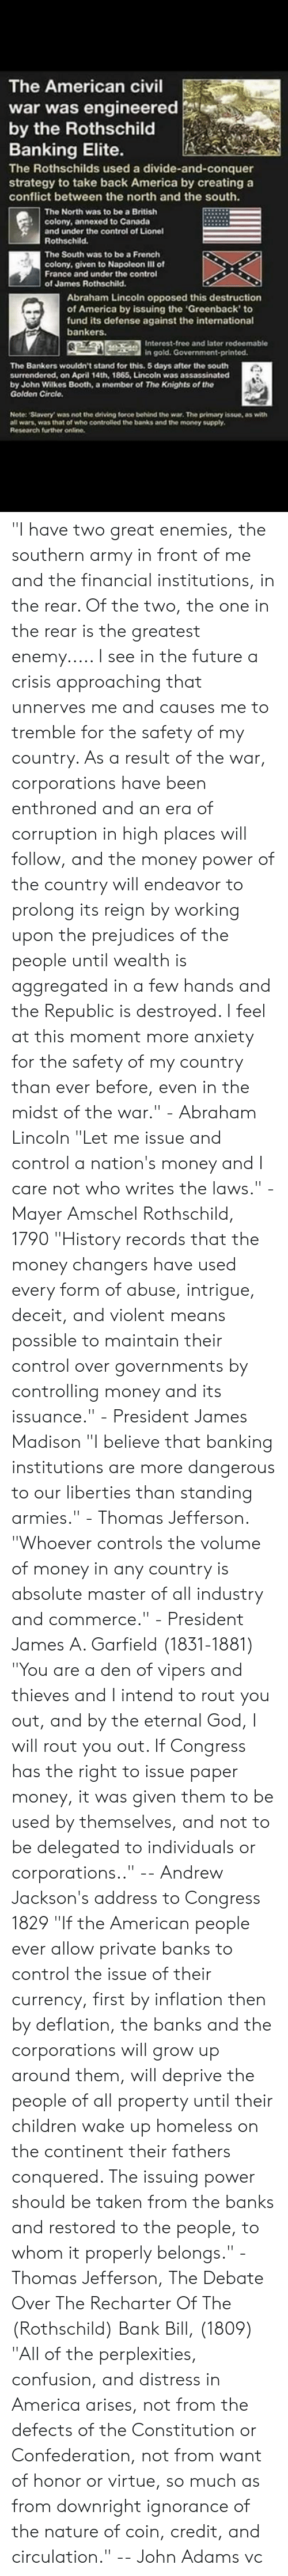 """rothschild bank: The American civil  war was engineered  by the Rothschild  Banking Elite.  The Rothschilds used a divide-and-conquer  strategy to take back America by creating a  conflict between the north and the south.  The North was to be a British  colony, annexed to Canada  and under the control of Lionel  Rothschild.  The South was to be a French  colony, given to Napoleon Ill of  France and under the control  of James Rothschild.  Abraham Lincoln opposed this destruction  of America by issuing the 'Greenback' to  fund its defense against the international  bankers  Interest-free and later redeemable  in gold. Government-printed.  The Bankers wouldn't stand for this. 5 days after the south  surrendered, on April 14th, 1865, Lincoln was assassinated  by John Wilkes Booth, a member of The Knights of the  Golden Circle.  Note: Slavery was not the driving force behind the war. The primary issue, as with  all wars, was that of who controlled the banks and the money supply  Research further online. """"I have two great enemies, the southern army in front of me and the financial institutions, in the rear. Of the two, the one in the rear is the greatest enemy..... I see in the future a crisis approaching that unnerves me and causes me to tremble for the safety of my country. As a result of the war, corporations have been enthroned and an era of corruption in high places will follow, and the money power of the country will endeavor to prolong its reign by working upon the prejudices of the people until wealth is aggregated in a few hands and the Republic is destroyed. I feel at this moment more anxiety for the safety of my country than ever before, even in the midst of the war."""" - Abraham Lincoln  """"Let me issue and control a nation's money and I care not who writes the laws."""" - Mayer Amschel Rothschild, 1790  """"History records that the money changers have used every form of abuse, intrigue, deceit, and violent means possible to maintain their control over governments by c"""